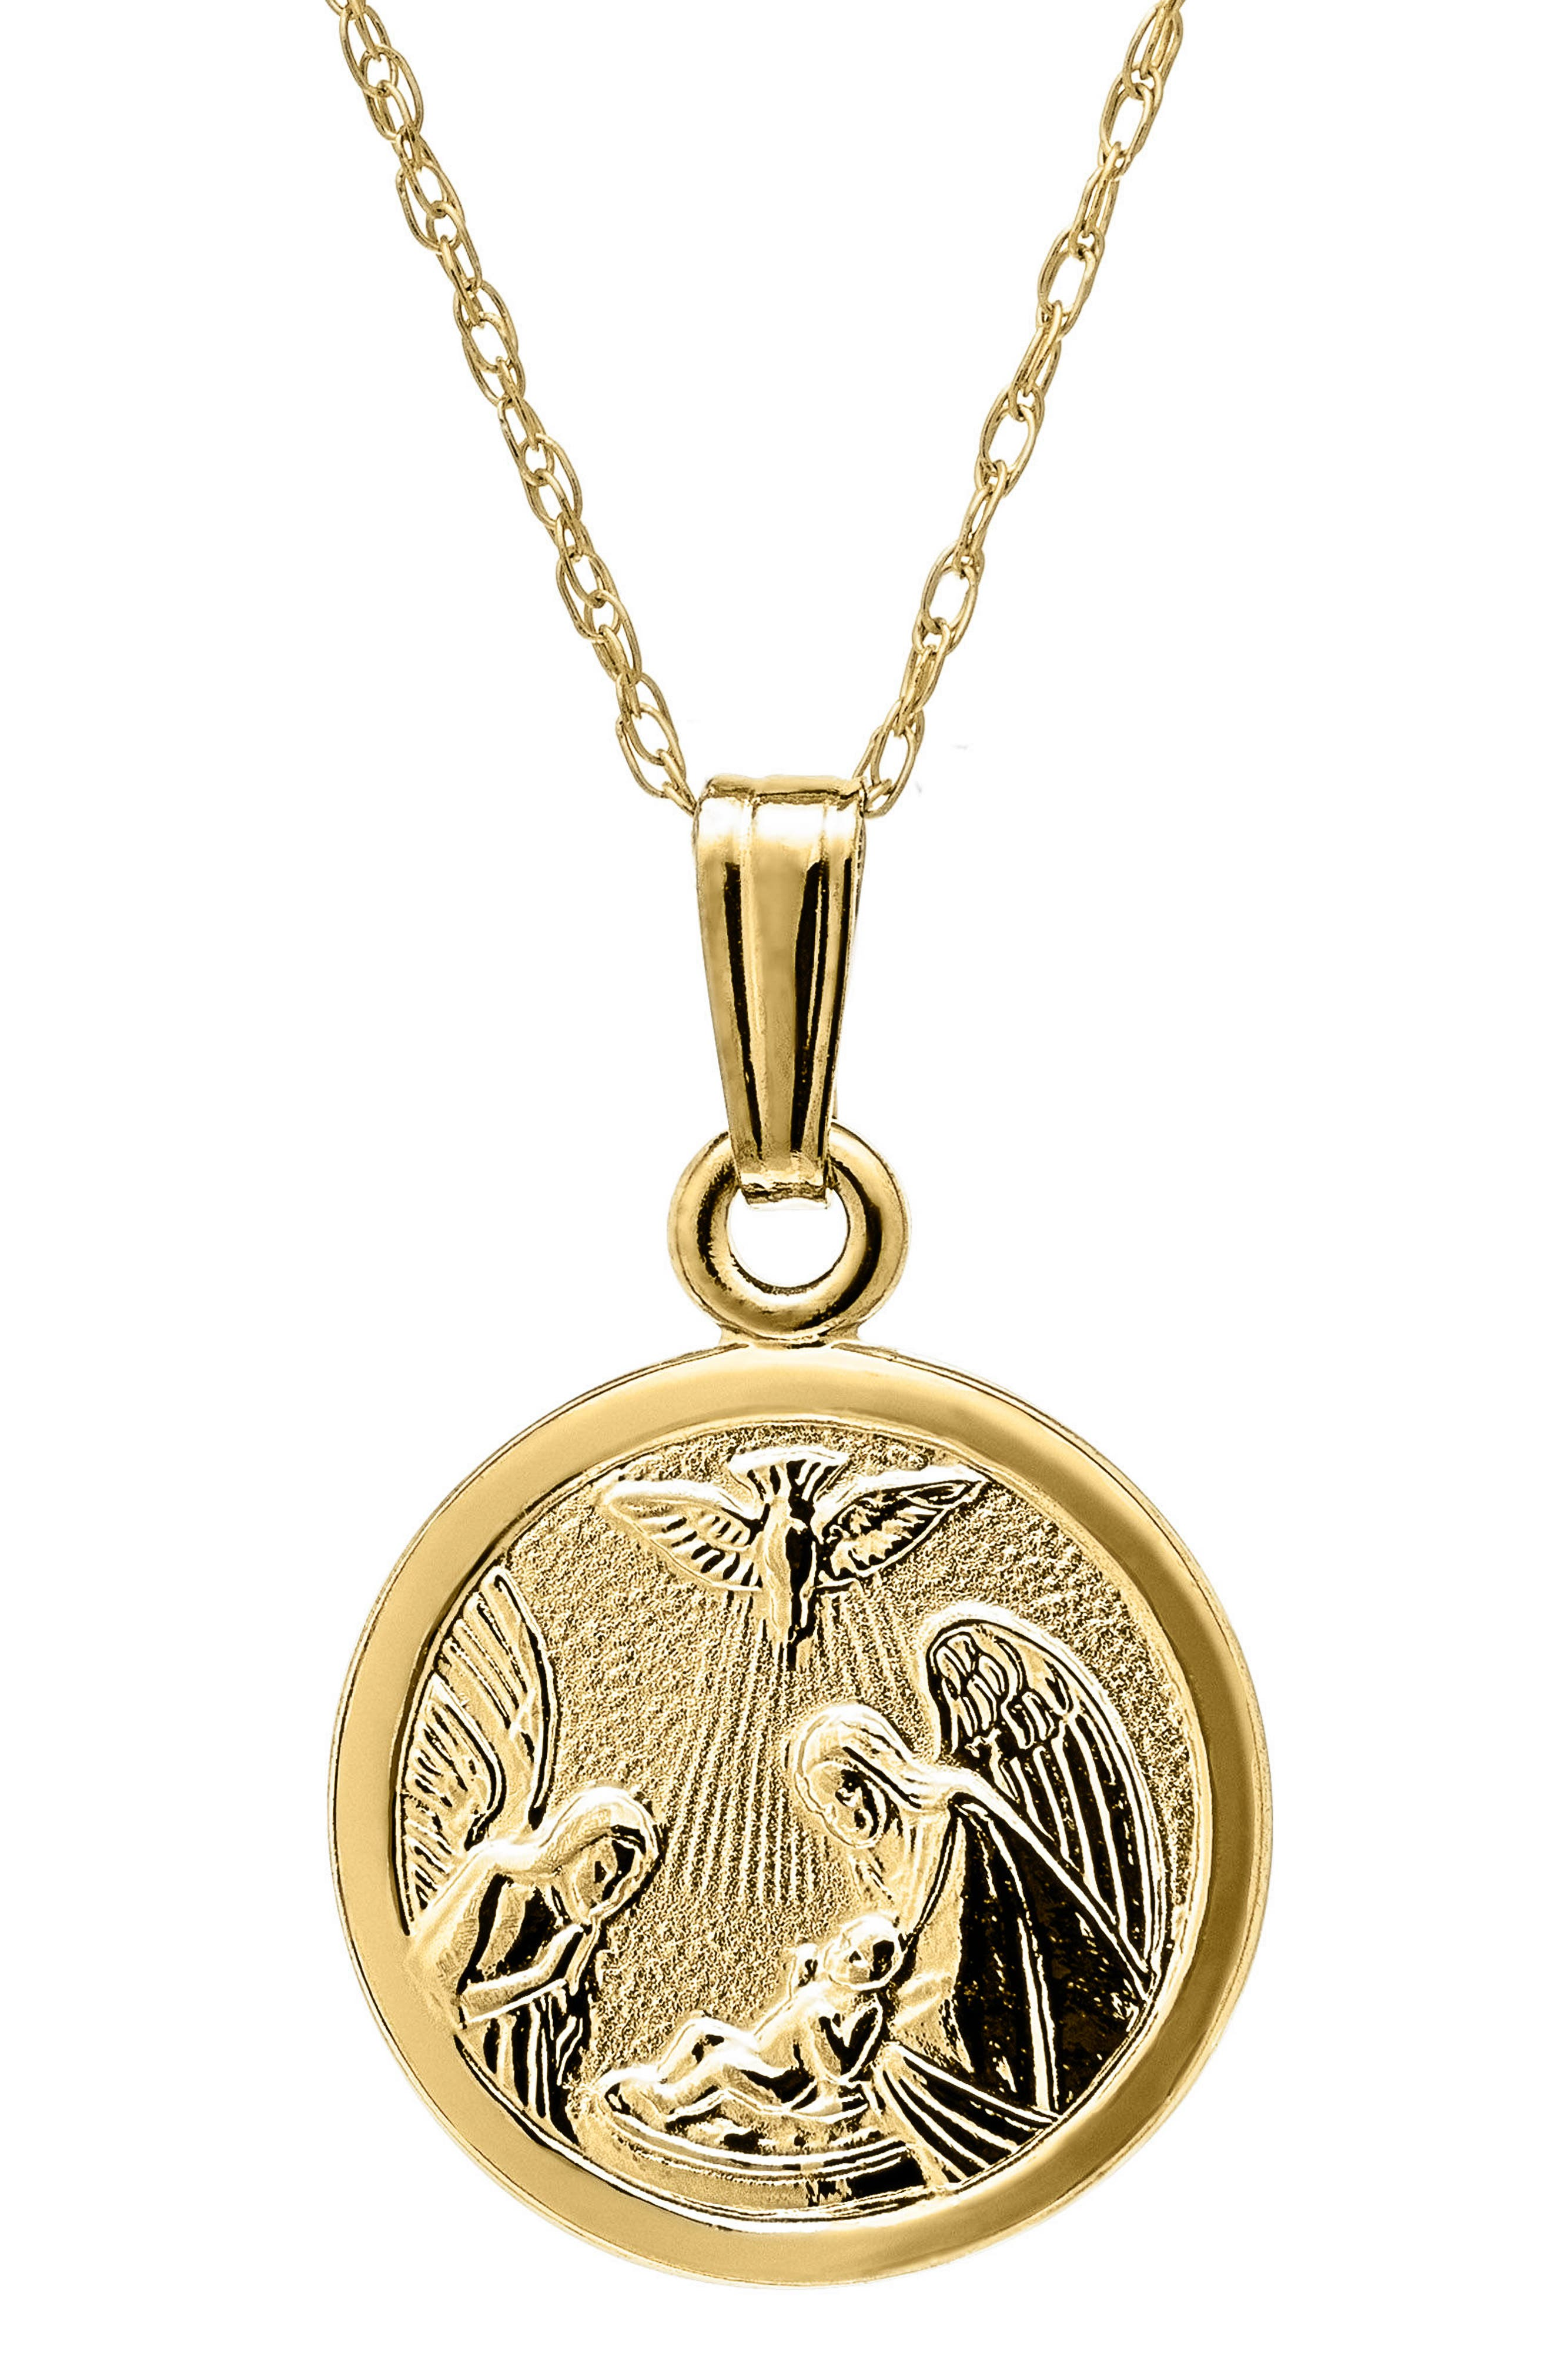 14k Gold Guardian Angel Pendant Necklace,                             Main thumbnail 1, color,                             Gold